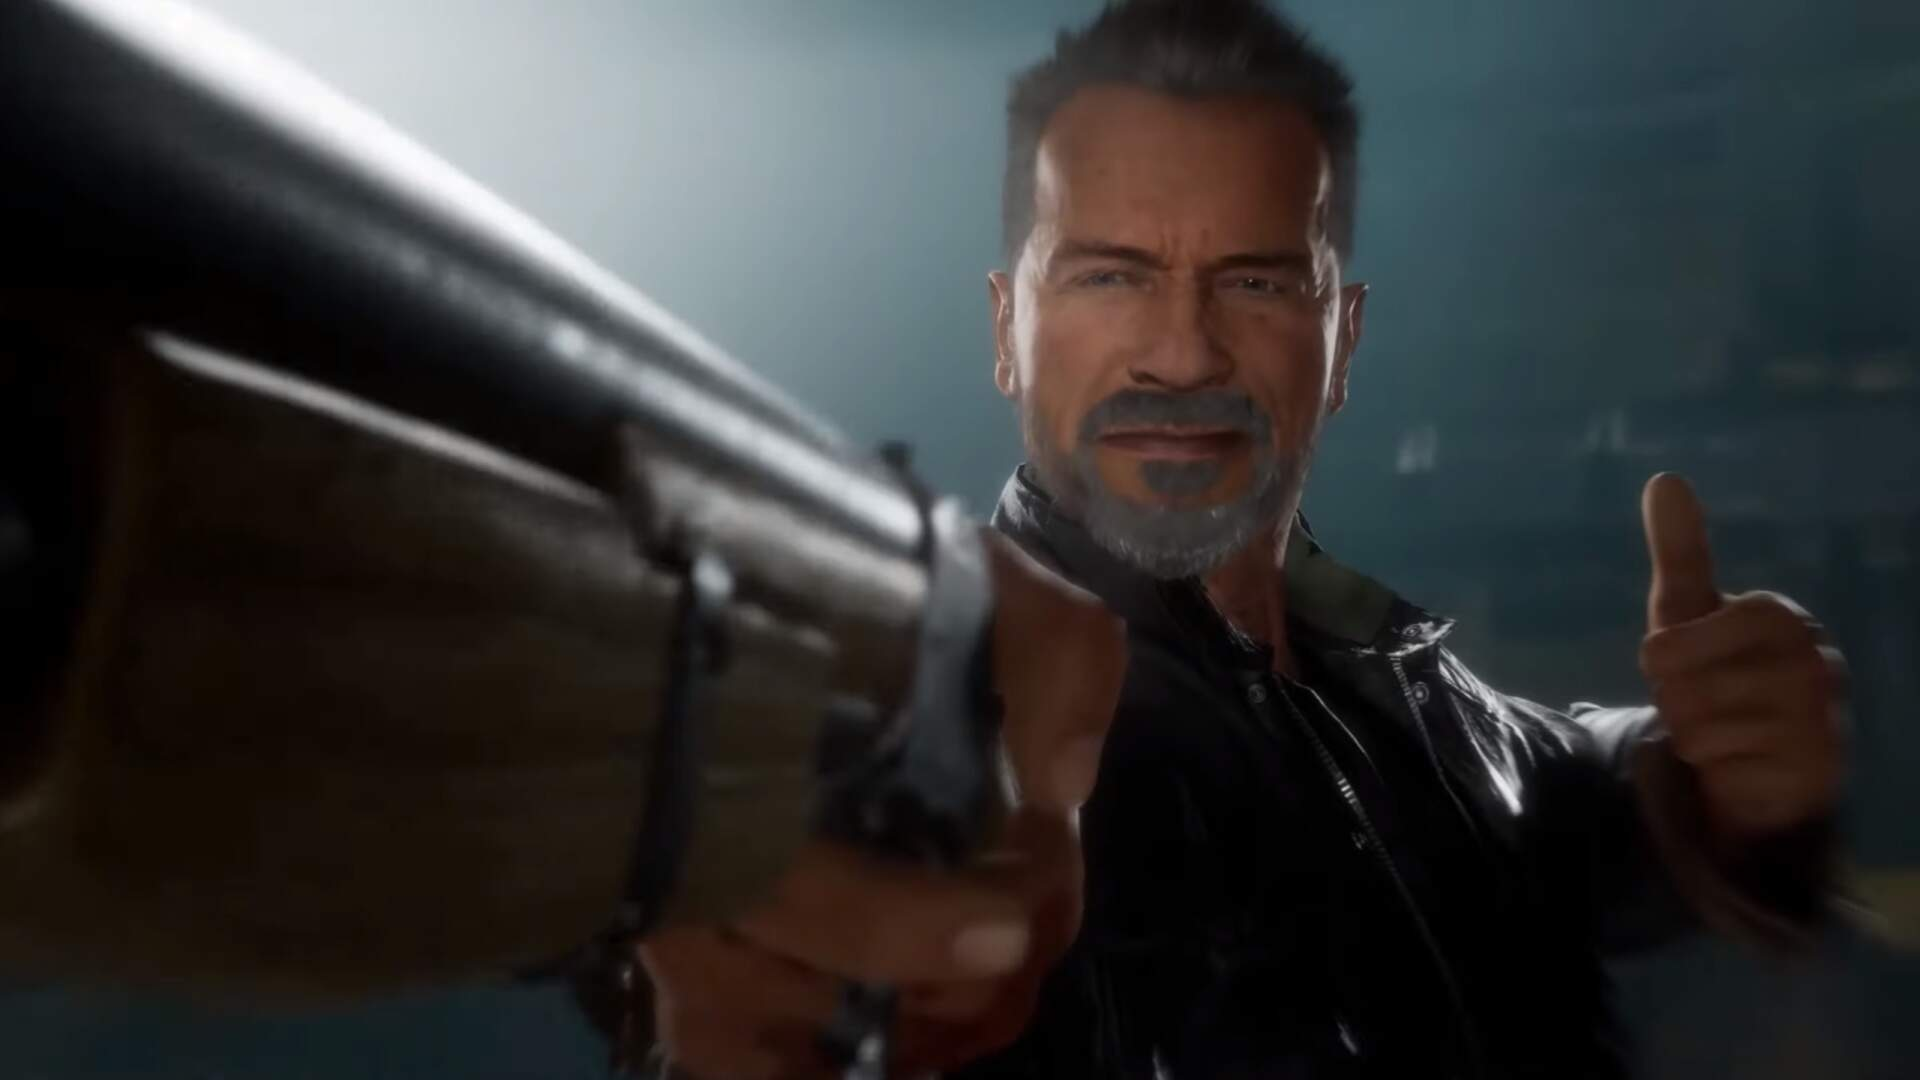 Schwarzenegger Makes His Fighting Game Debut in Mortal Kombat 11 Trailer